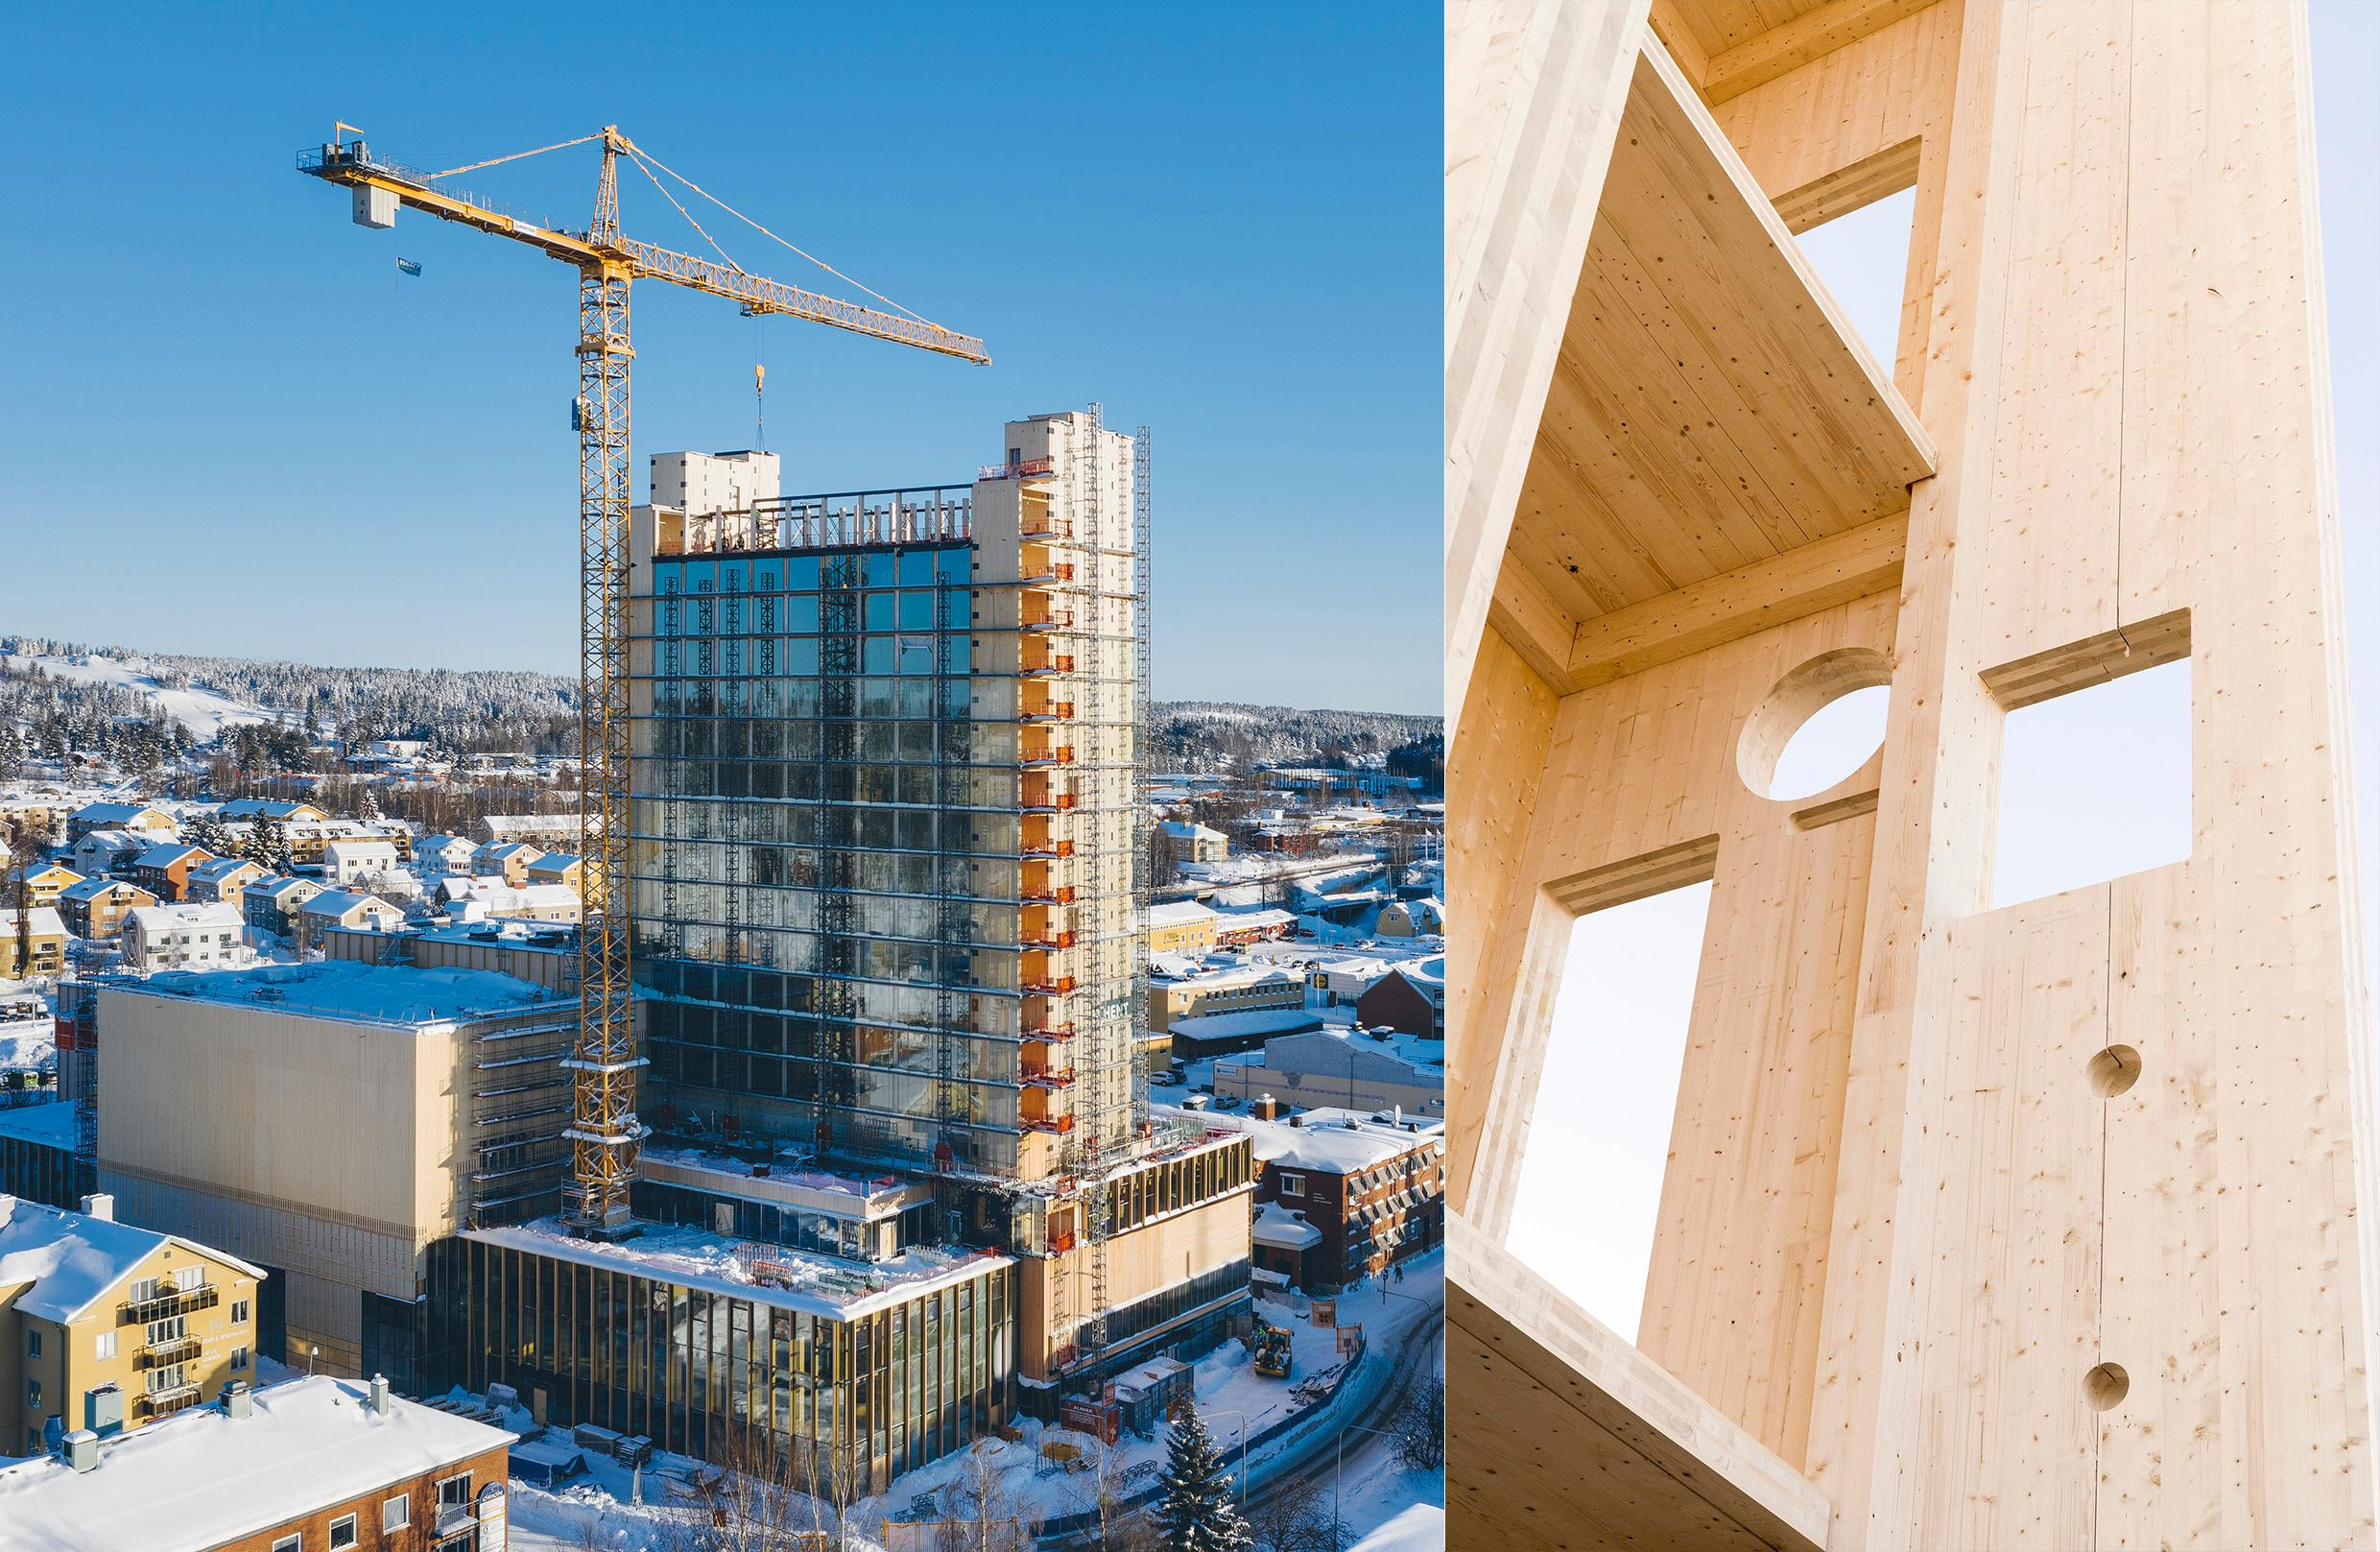 Sara Cultural Centre under construction. One photo with a towering building and a crane, one close-up of wooden walls.